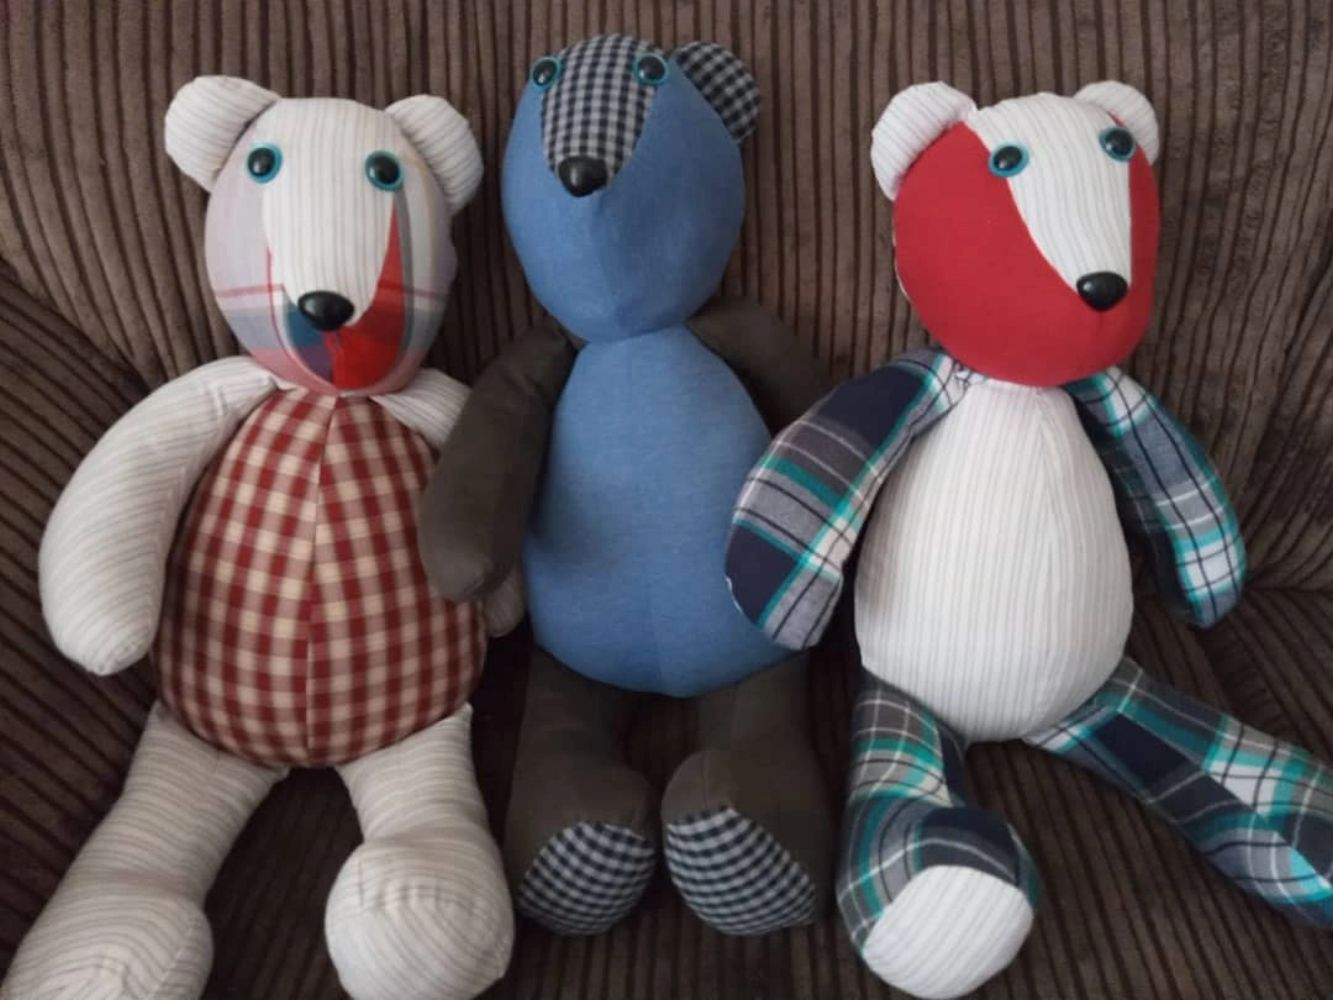 #HeatherMakes #memorybears #madetoorder made from loved ones clothing #sewing #handmade #blogger